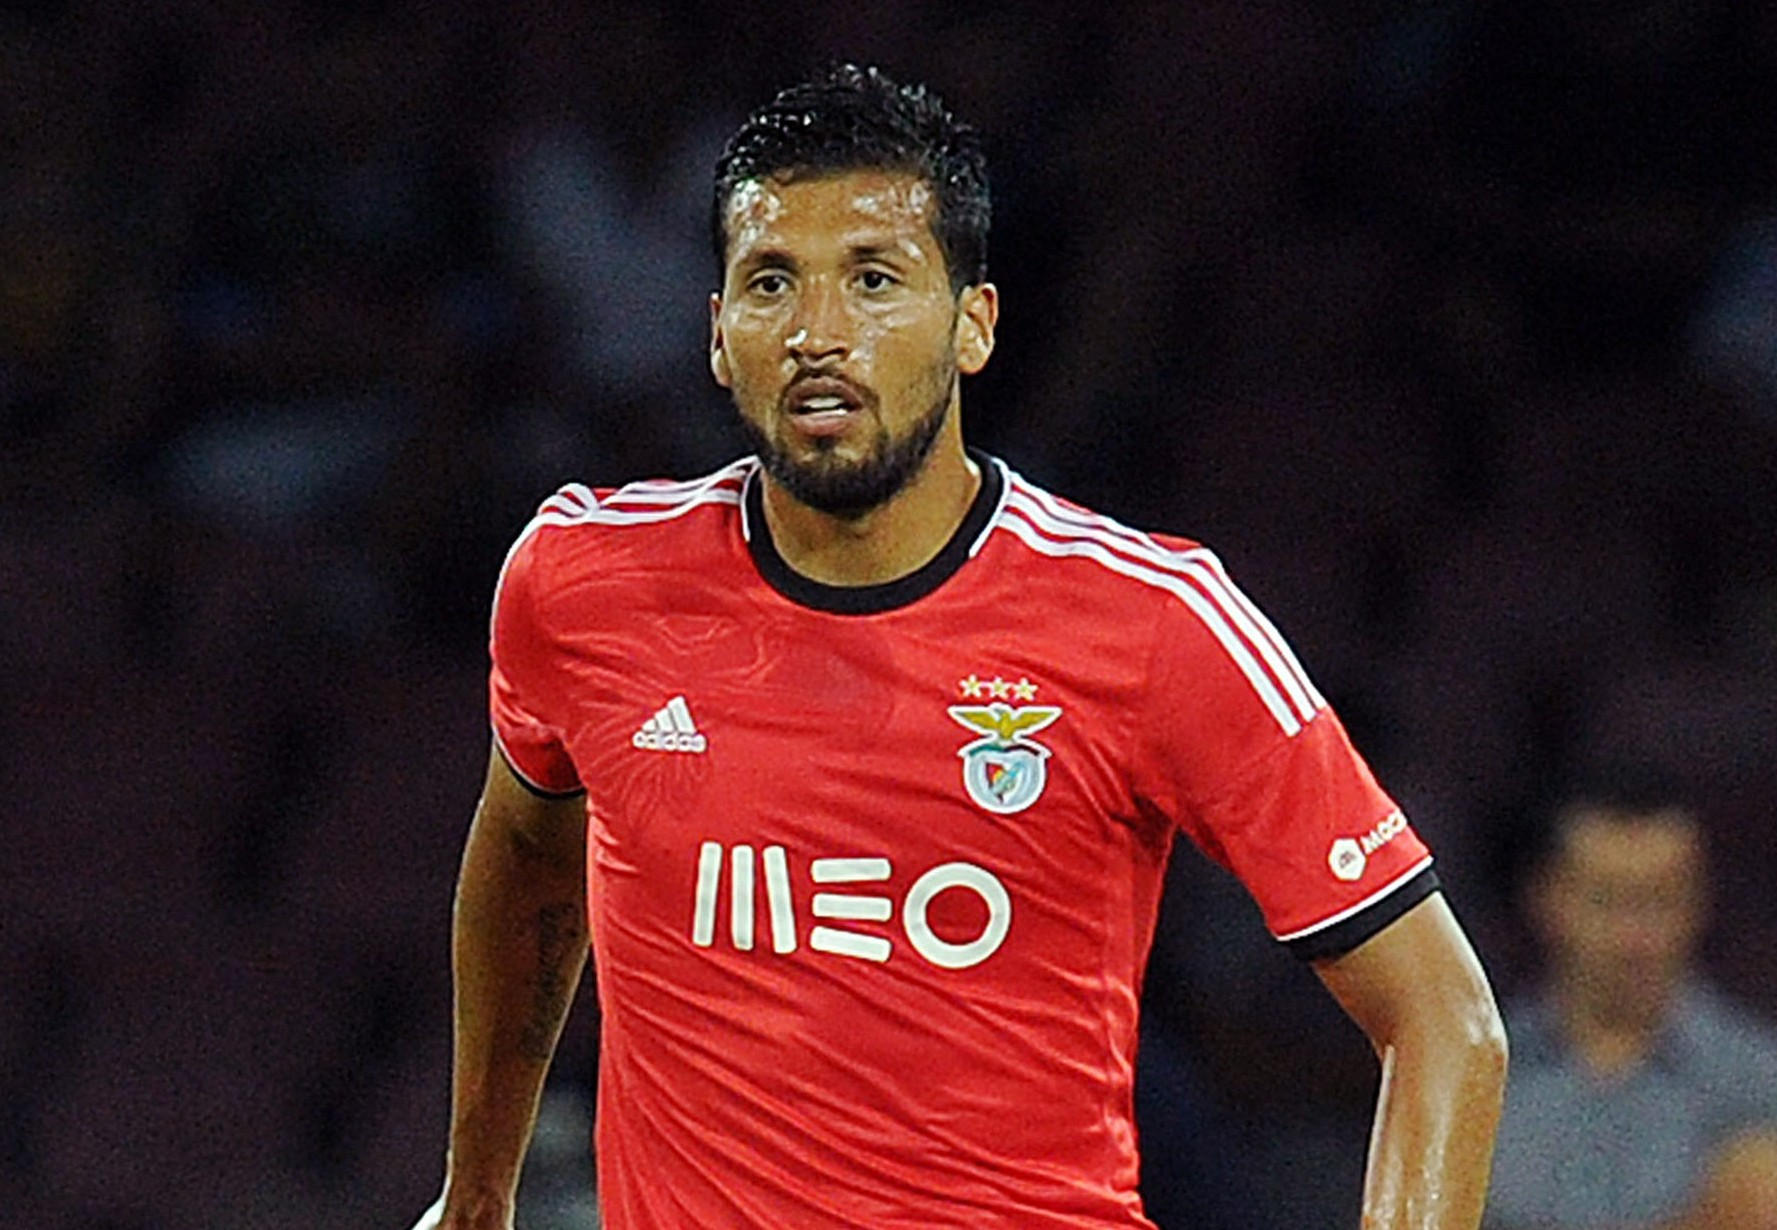 Manchester City join Manchester United in race for Ezequiel Garay